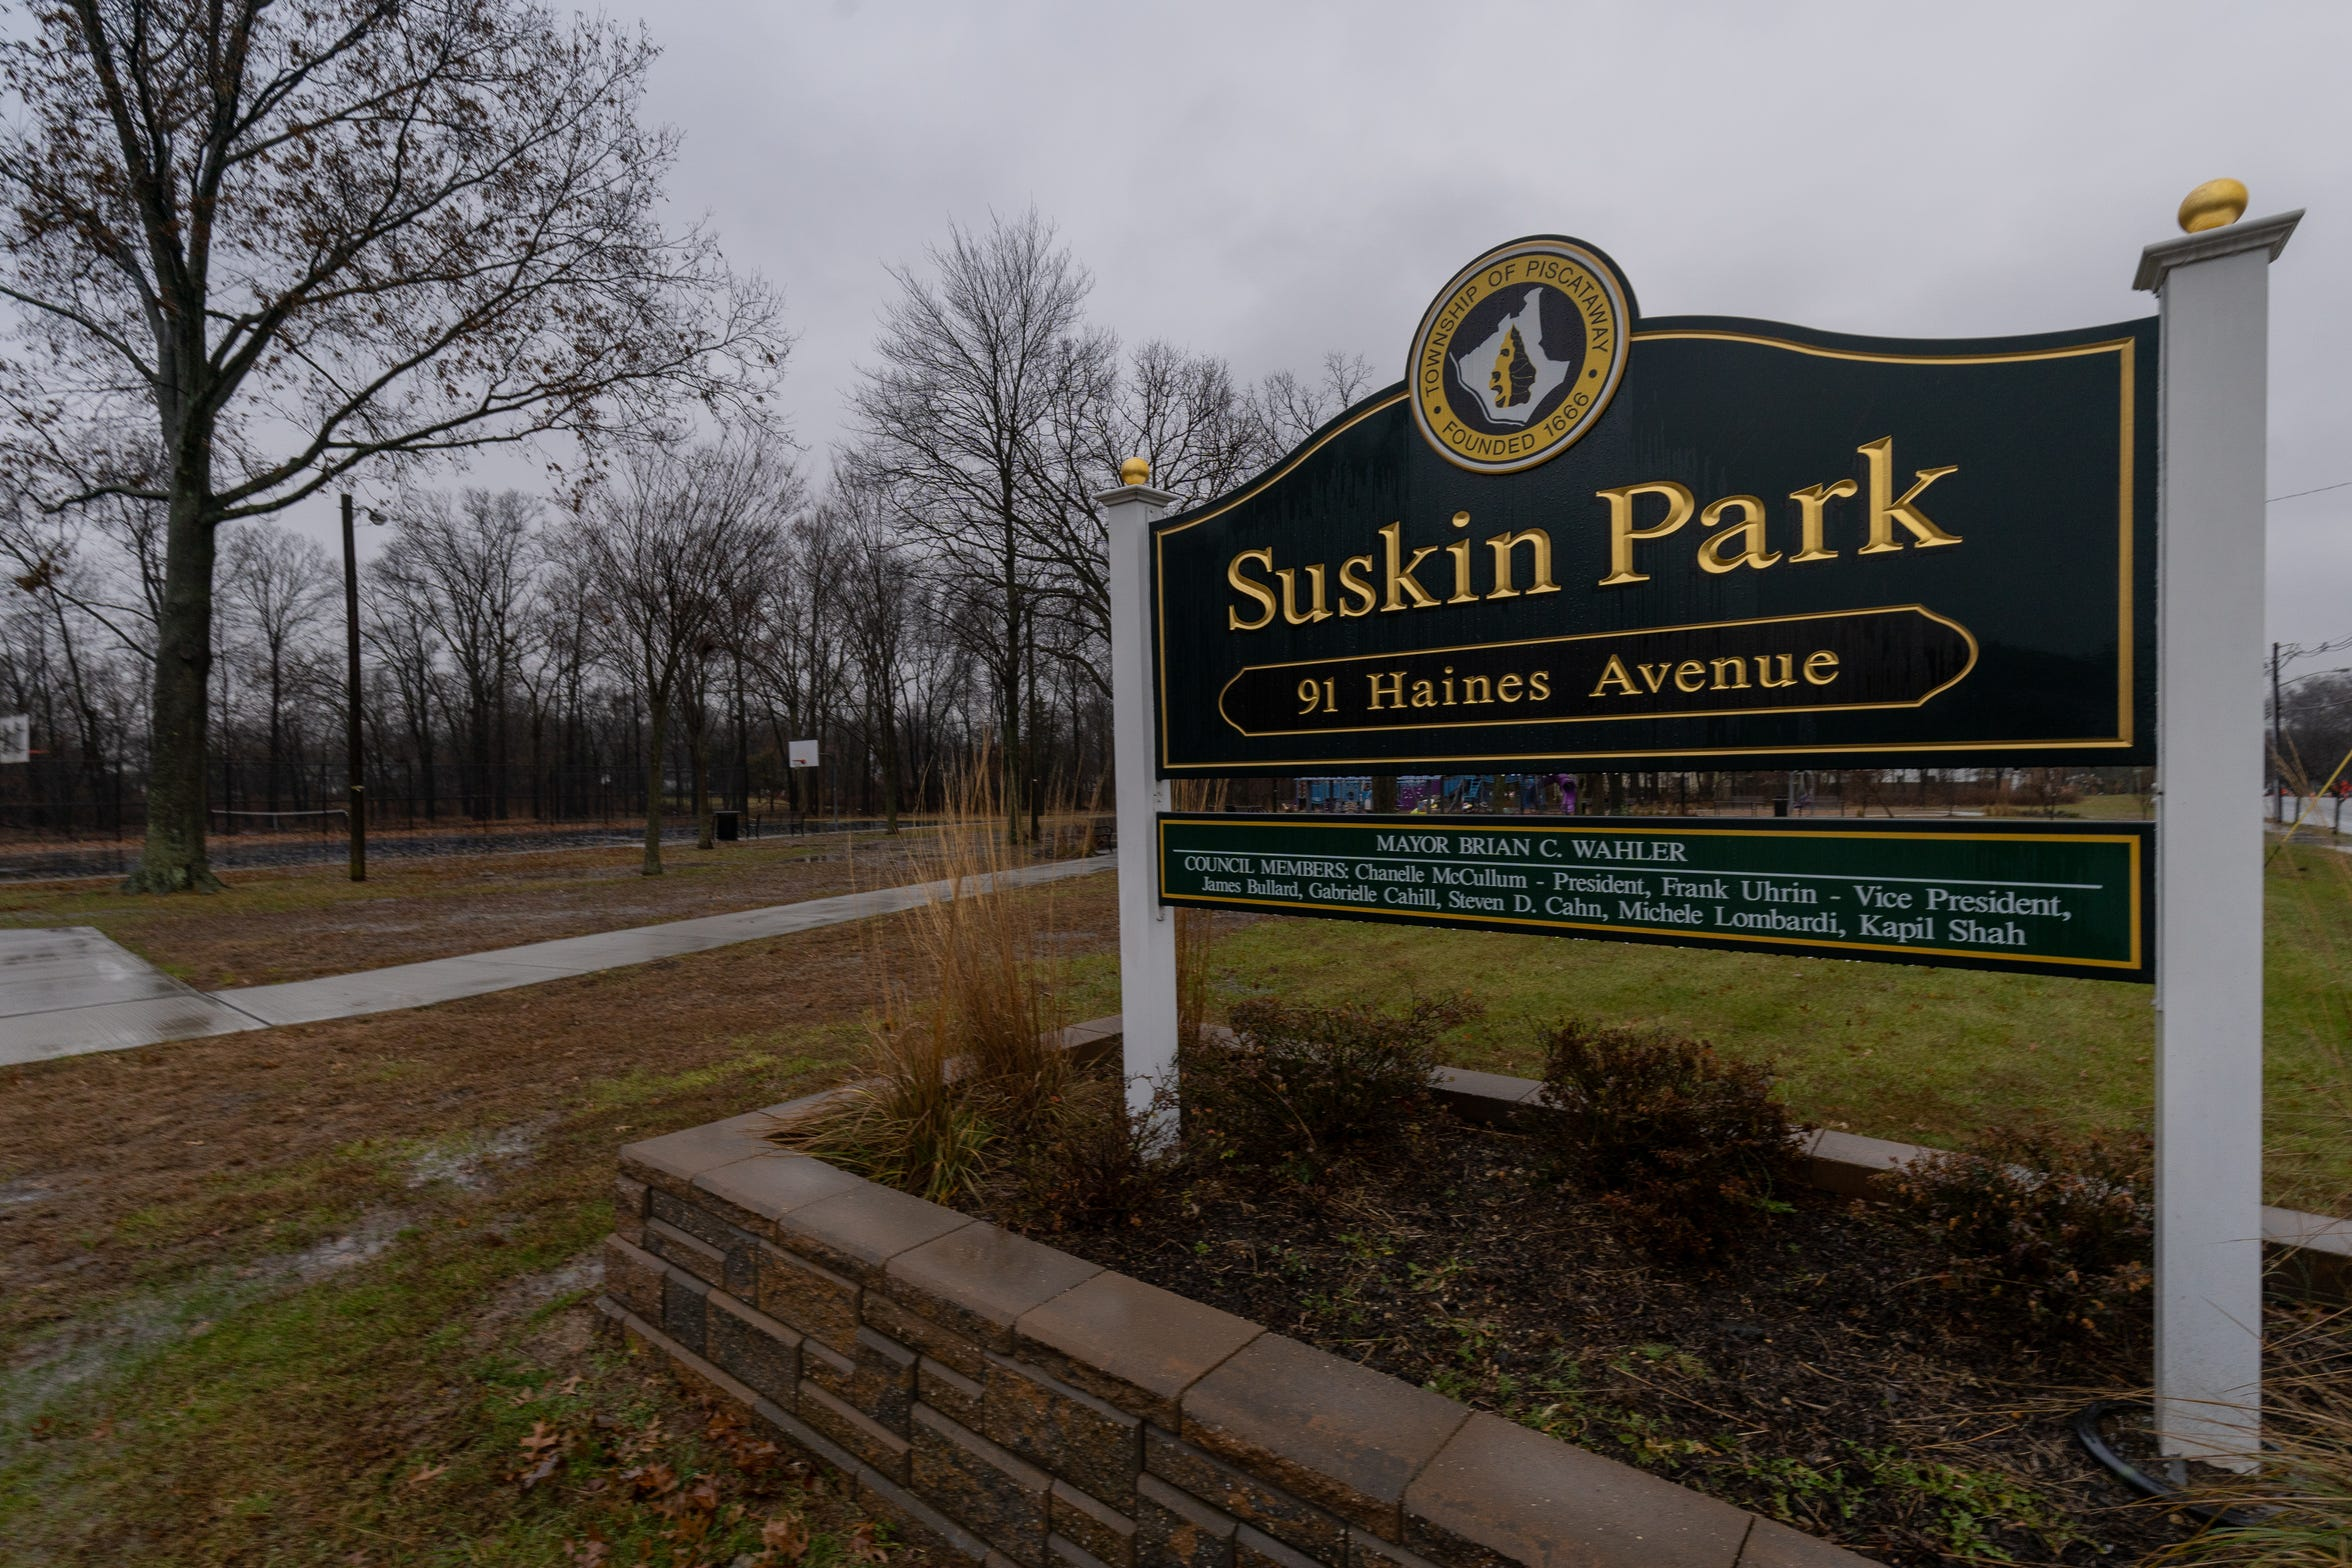 Who strangled Piscataway Councilman Jeffrey Suskin 31 years ago on the night of April 12 in his Jennifer Court township home?